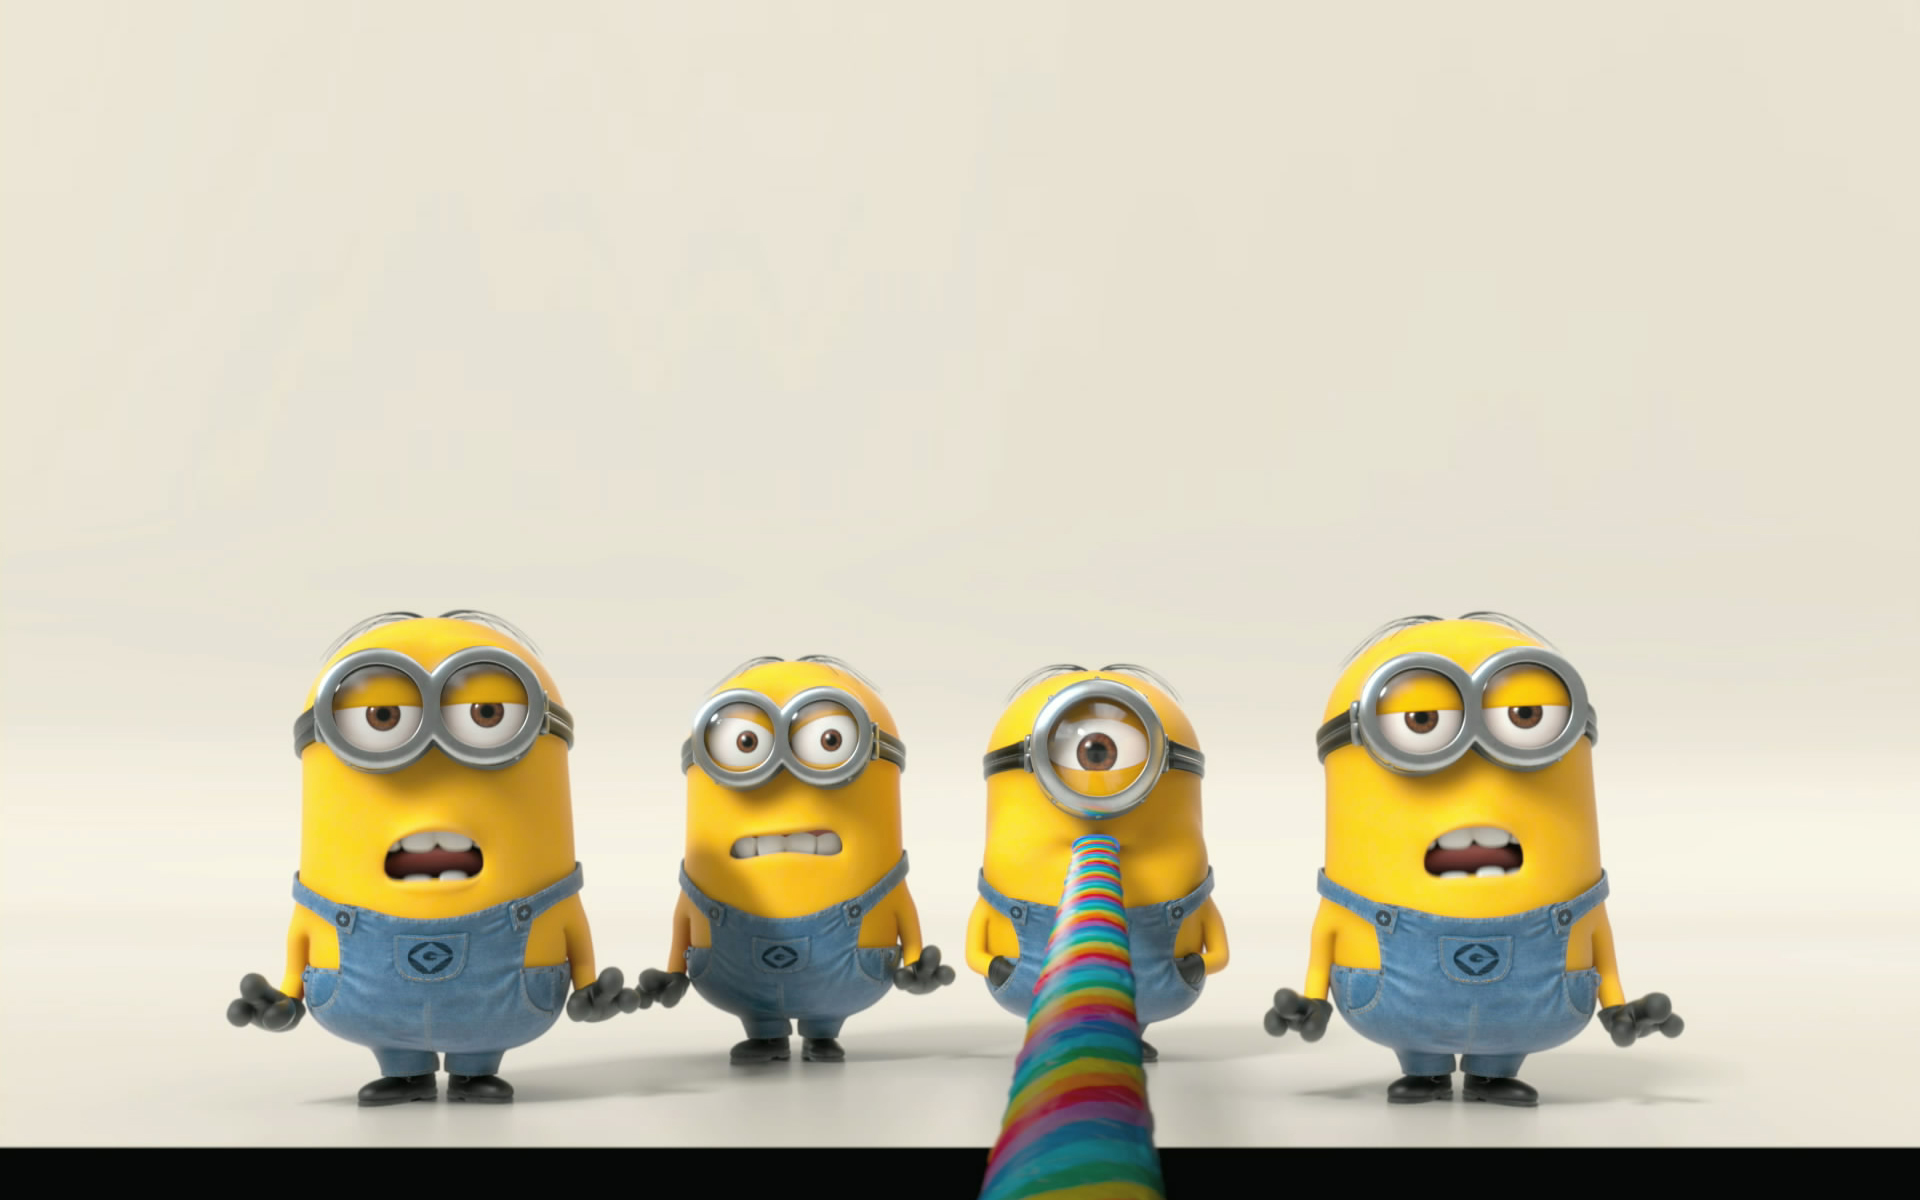 Minions Wallpaper For Laptop Laptop Wallpapers   HD Wallpapers 1920x1200